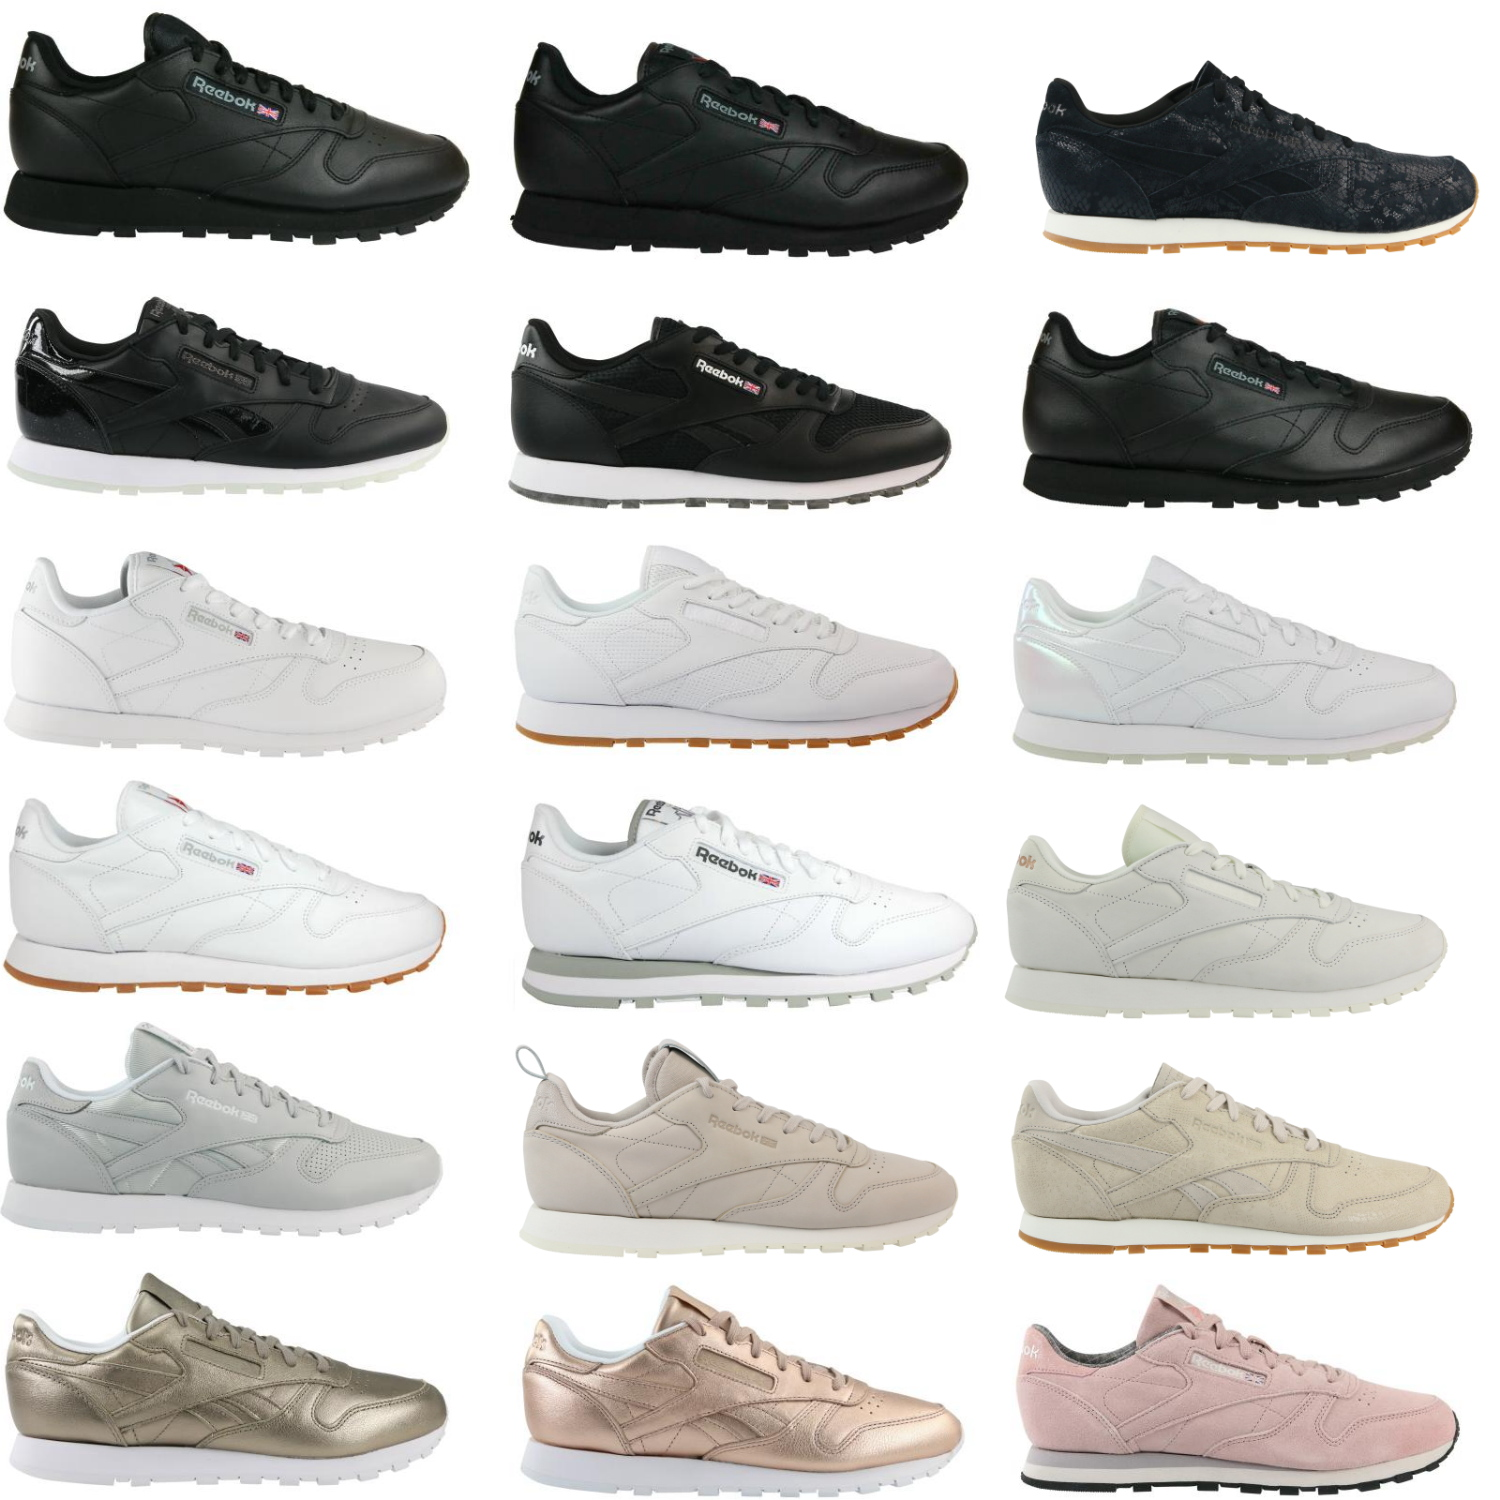 reebok classic leather nm fbt l pg clean exotics sneakers trainers shoes womens ebay. Black Bedroom Furniture Sets. Home Design Ideas